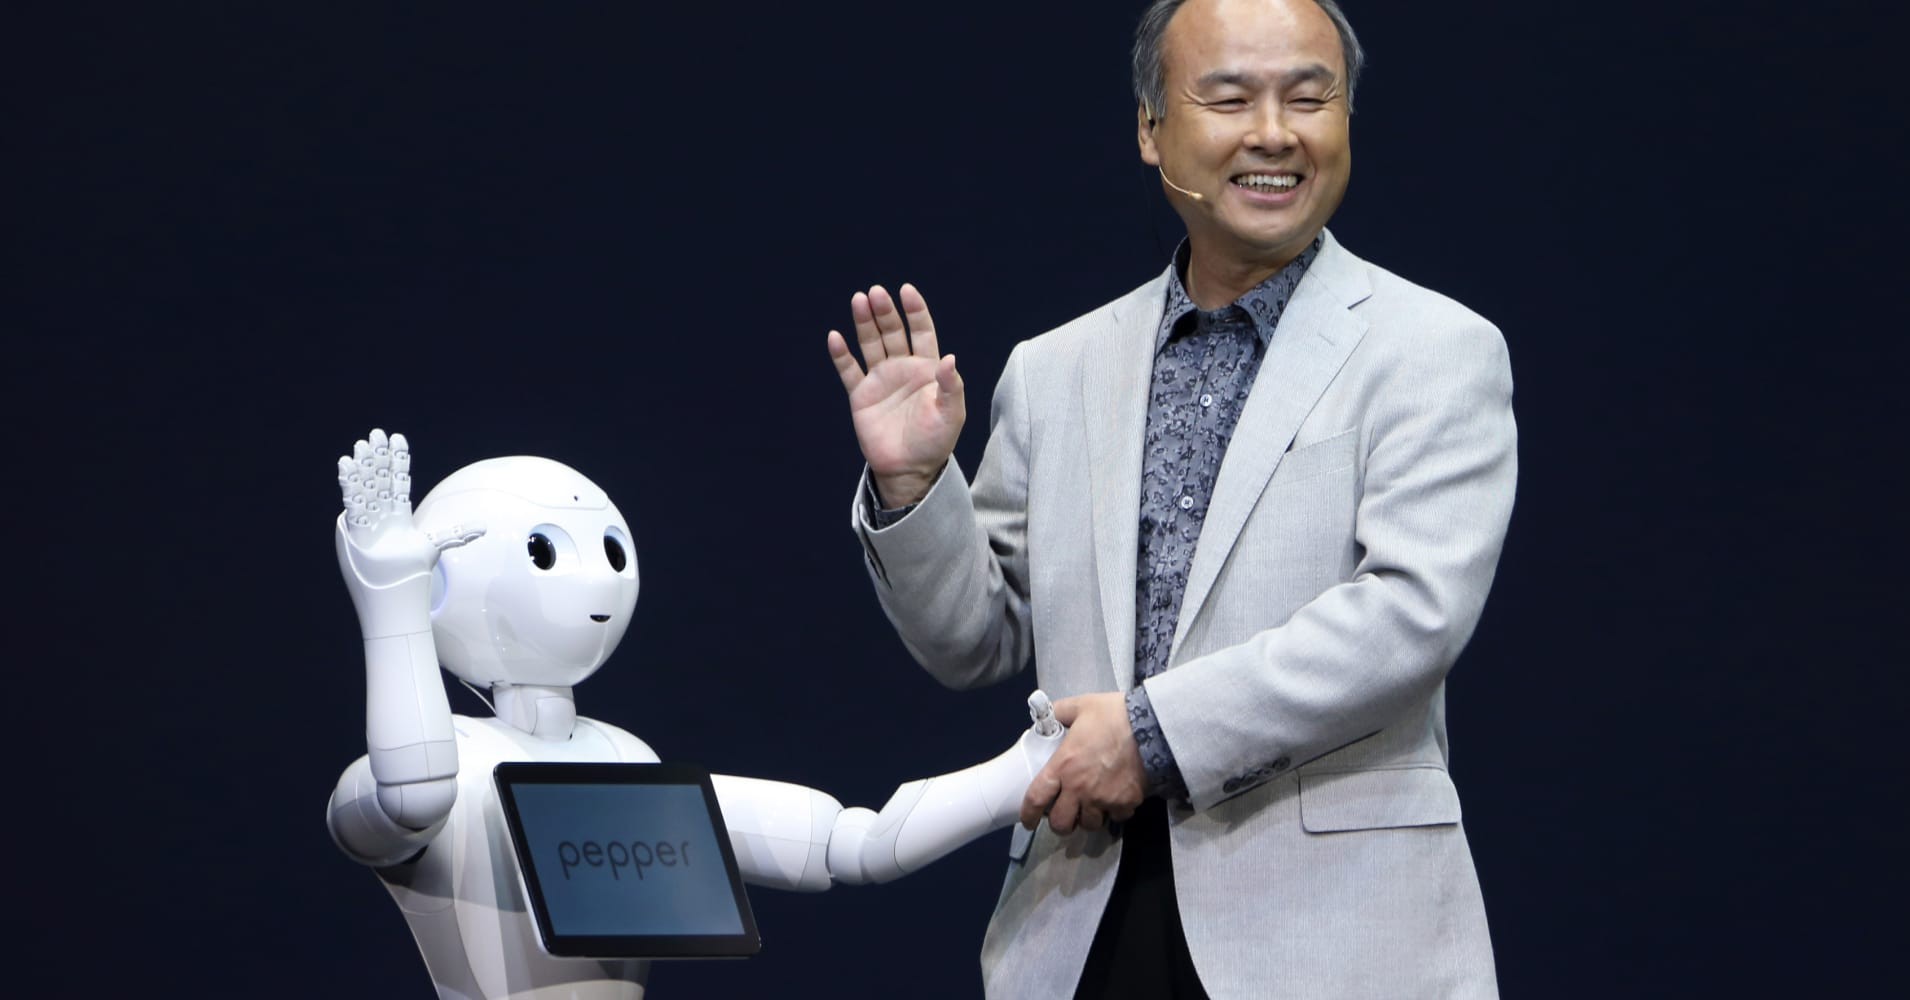 Billionaire CEO of SoftBank: Robots will have an IQ of 10,000 in 30 years